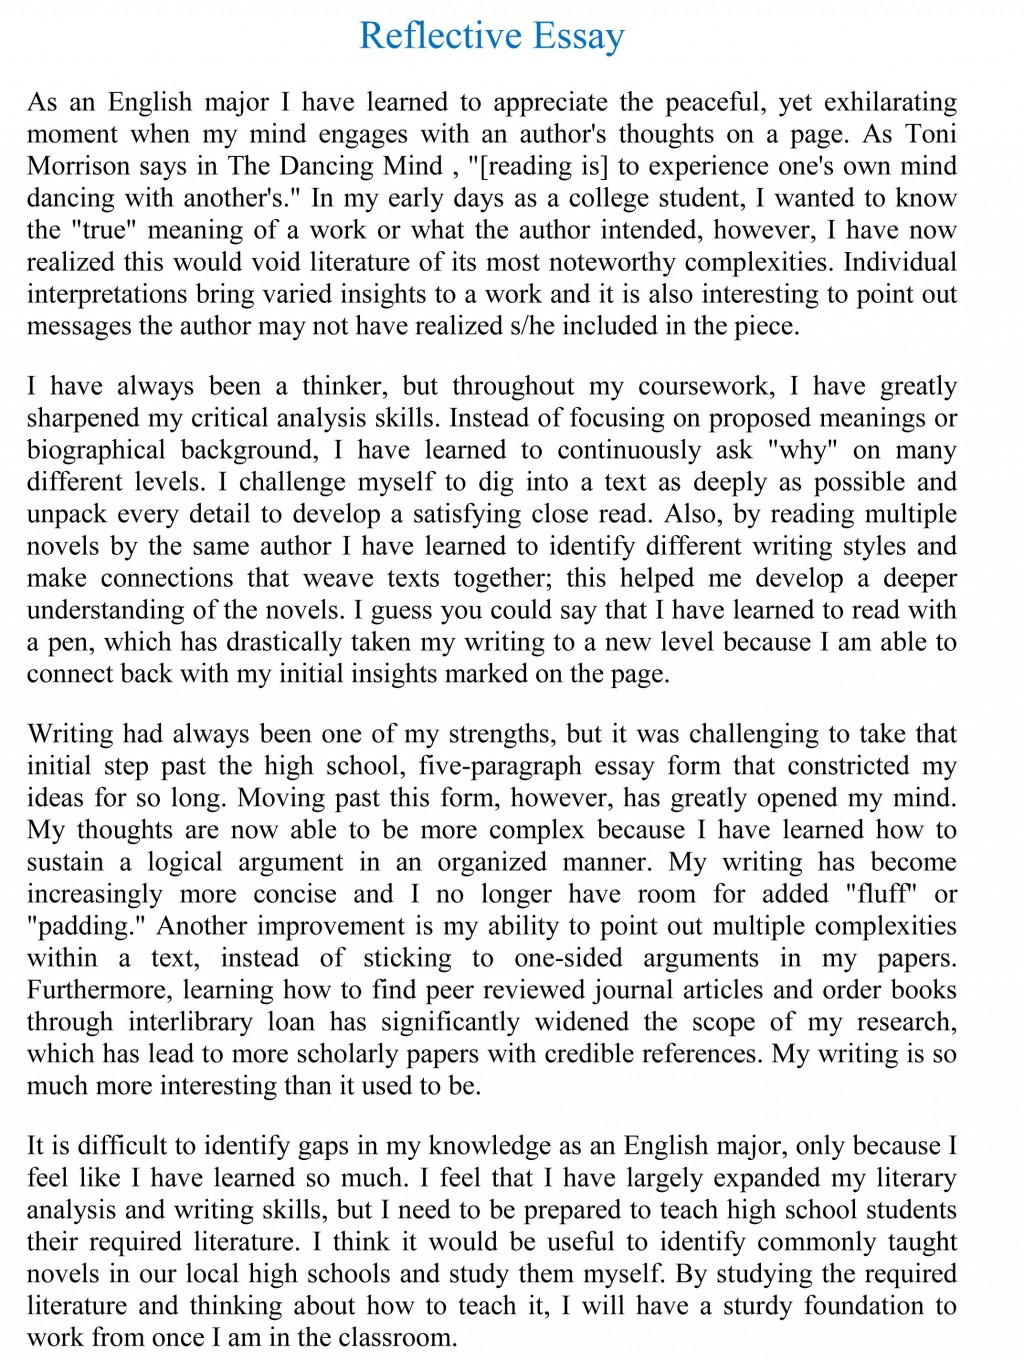 004 Reflective Essay Sample How To Start Introduction Surprising A Do You An Write For Large